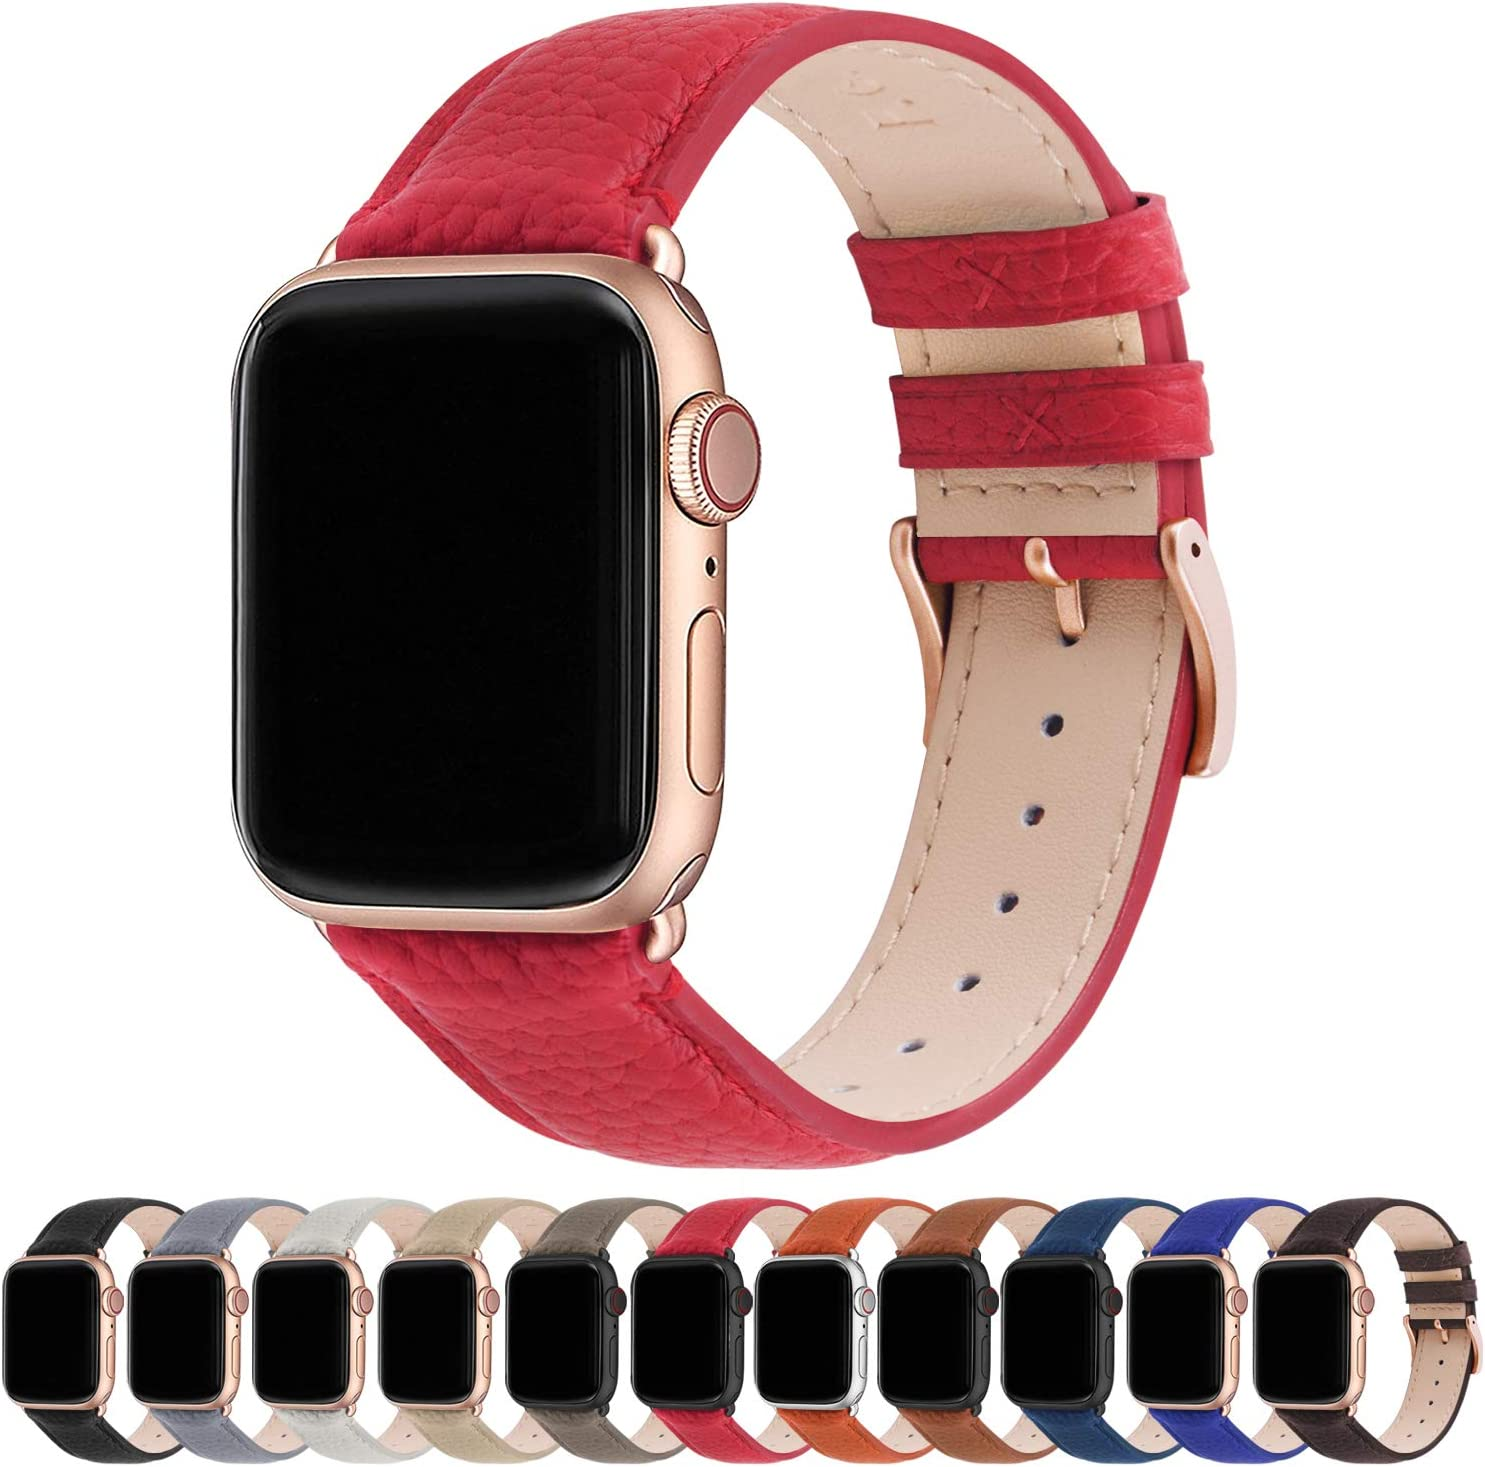 Fullmosa Compatible Apple Watch Band 44mm 42mm 40mm 38mm Leather Compatible iWatch Band/Strap Compatible Apple Watch SE & Series 6 5 4 3 2 1, 38mm 40mm, Red + Rose Gold Buckle